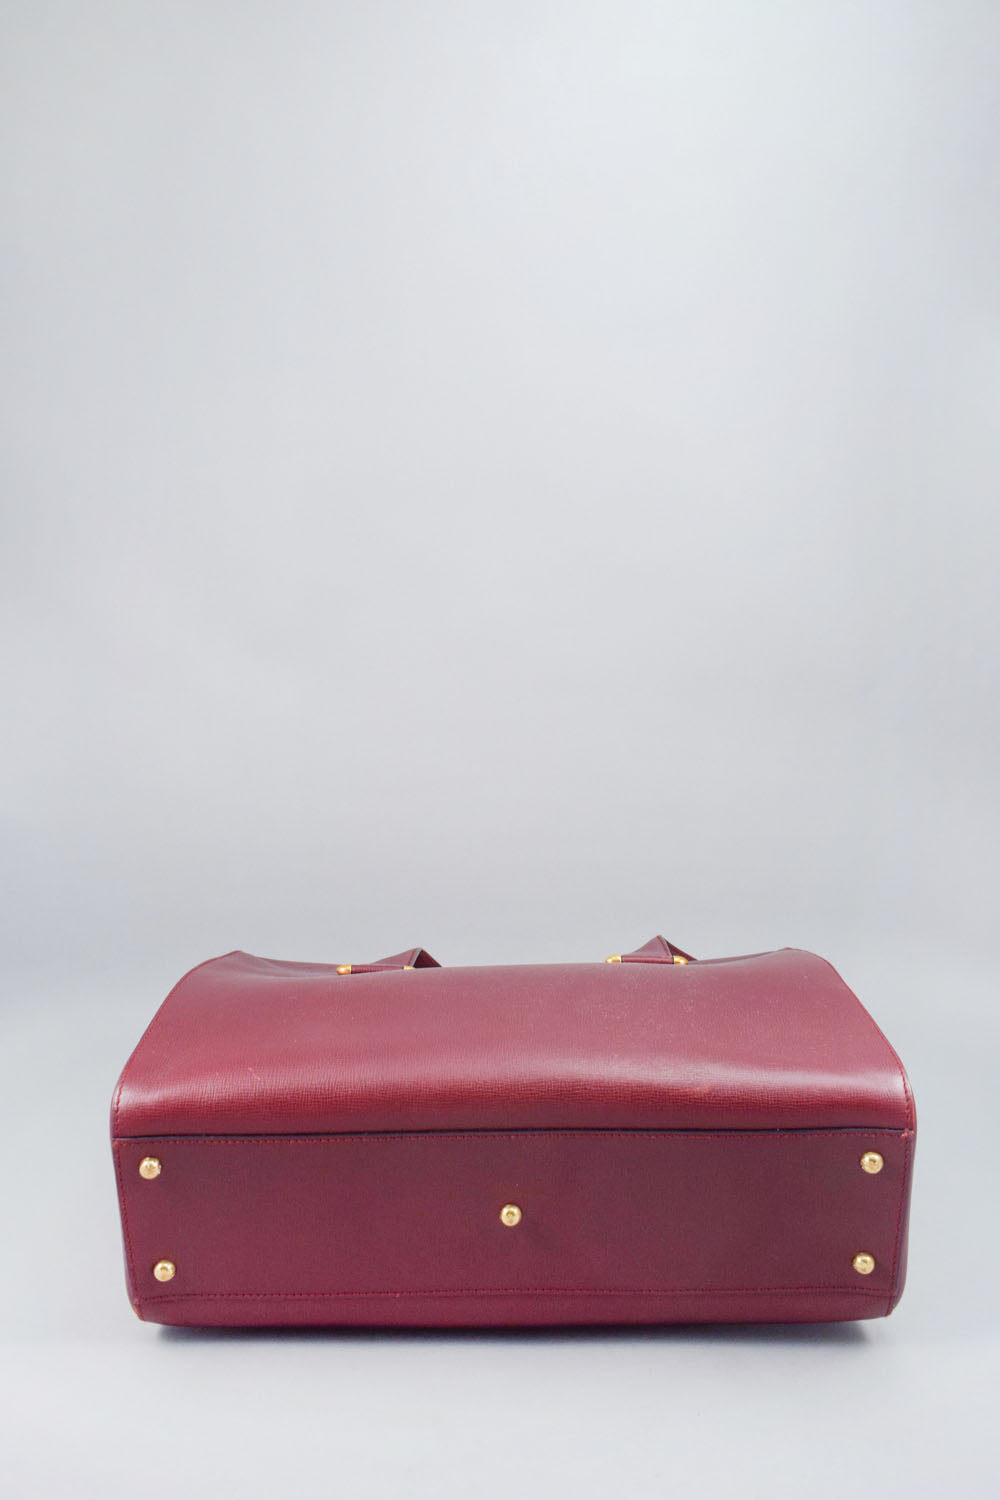 Cartier Burgundy Leather Shoulder Bag